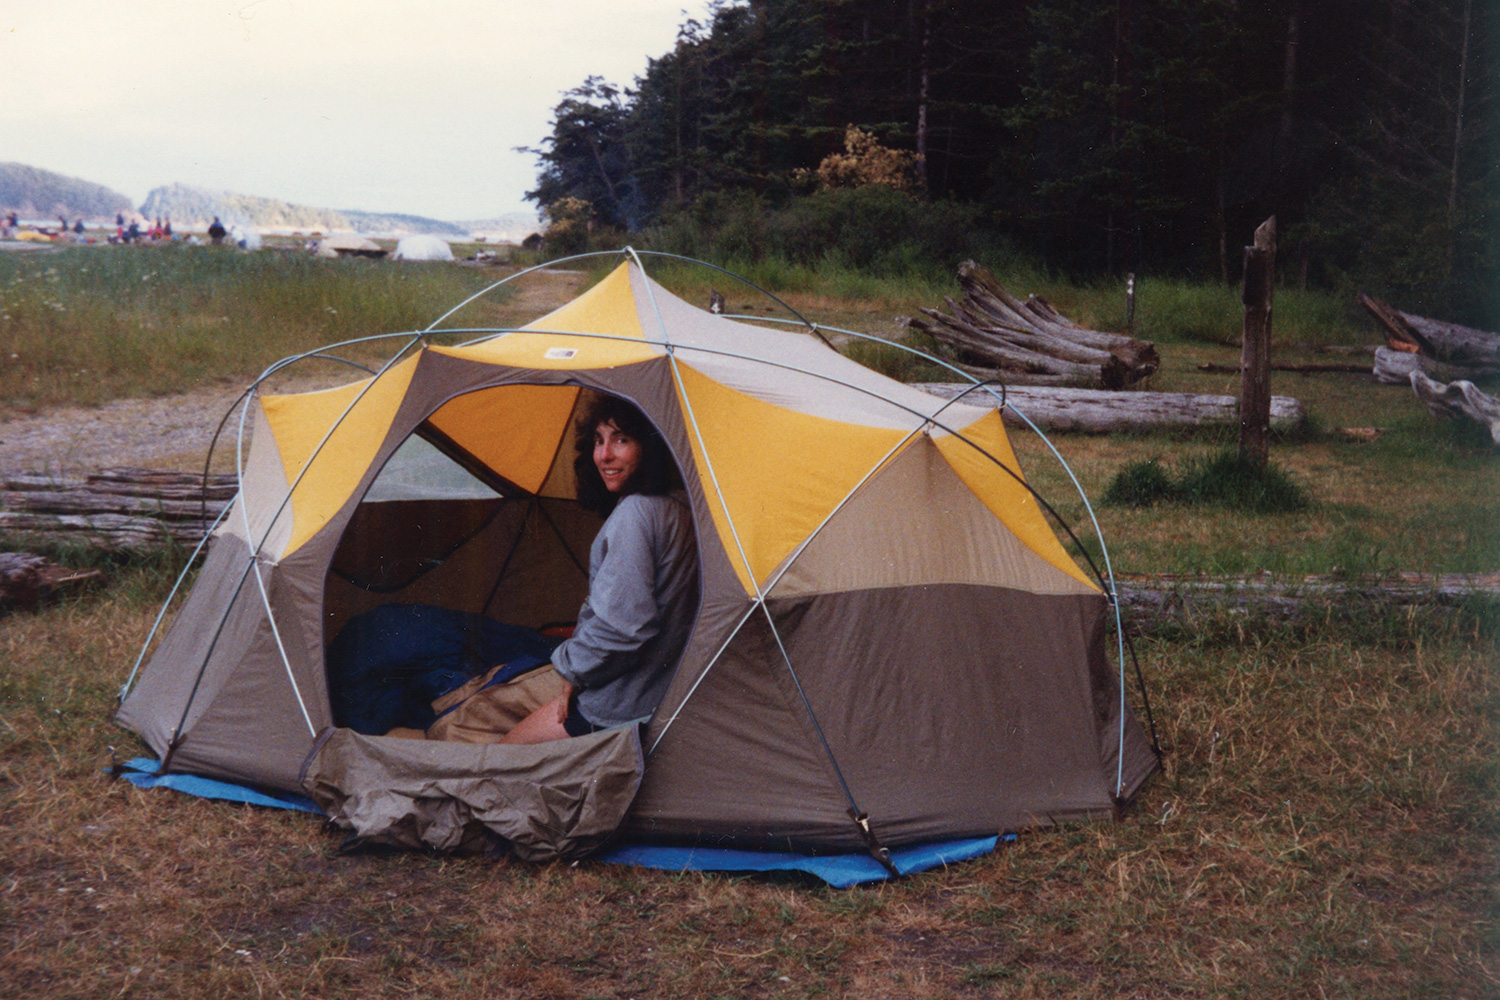 essays on camping trips I think its time i get this off my chest i was about 3 years ago, when a camping trip will haunt us for as long as i can remember a group of us set out on a camping.